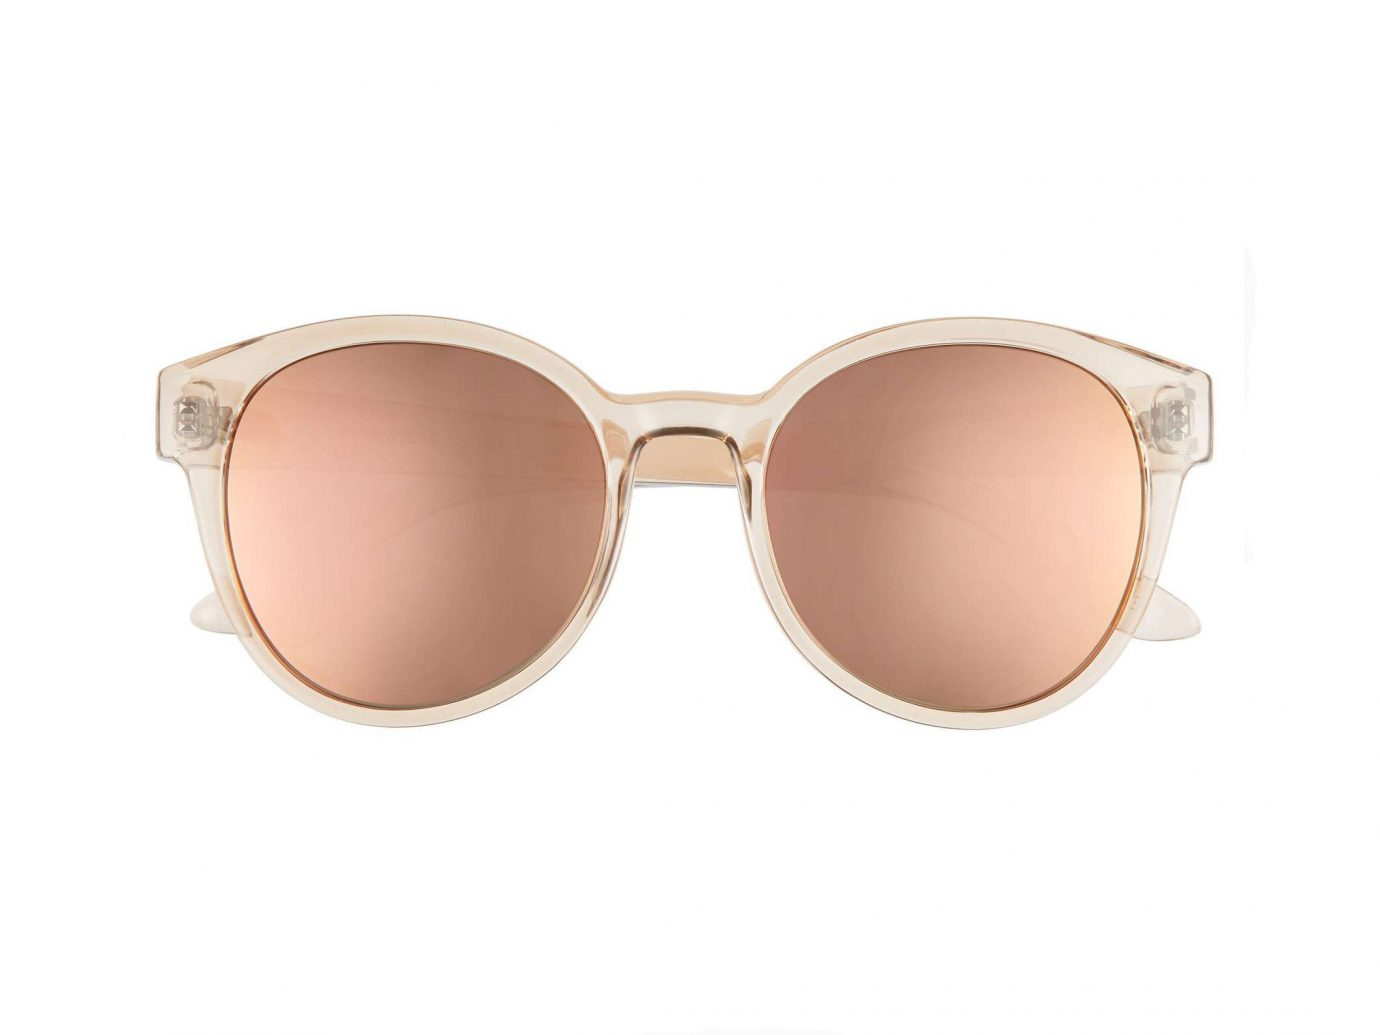 Trip Ideas eyewear spectacles sunglasses vision care brown glasses beige product product design peach accessory goggles